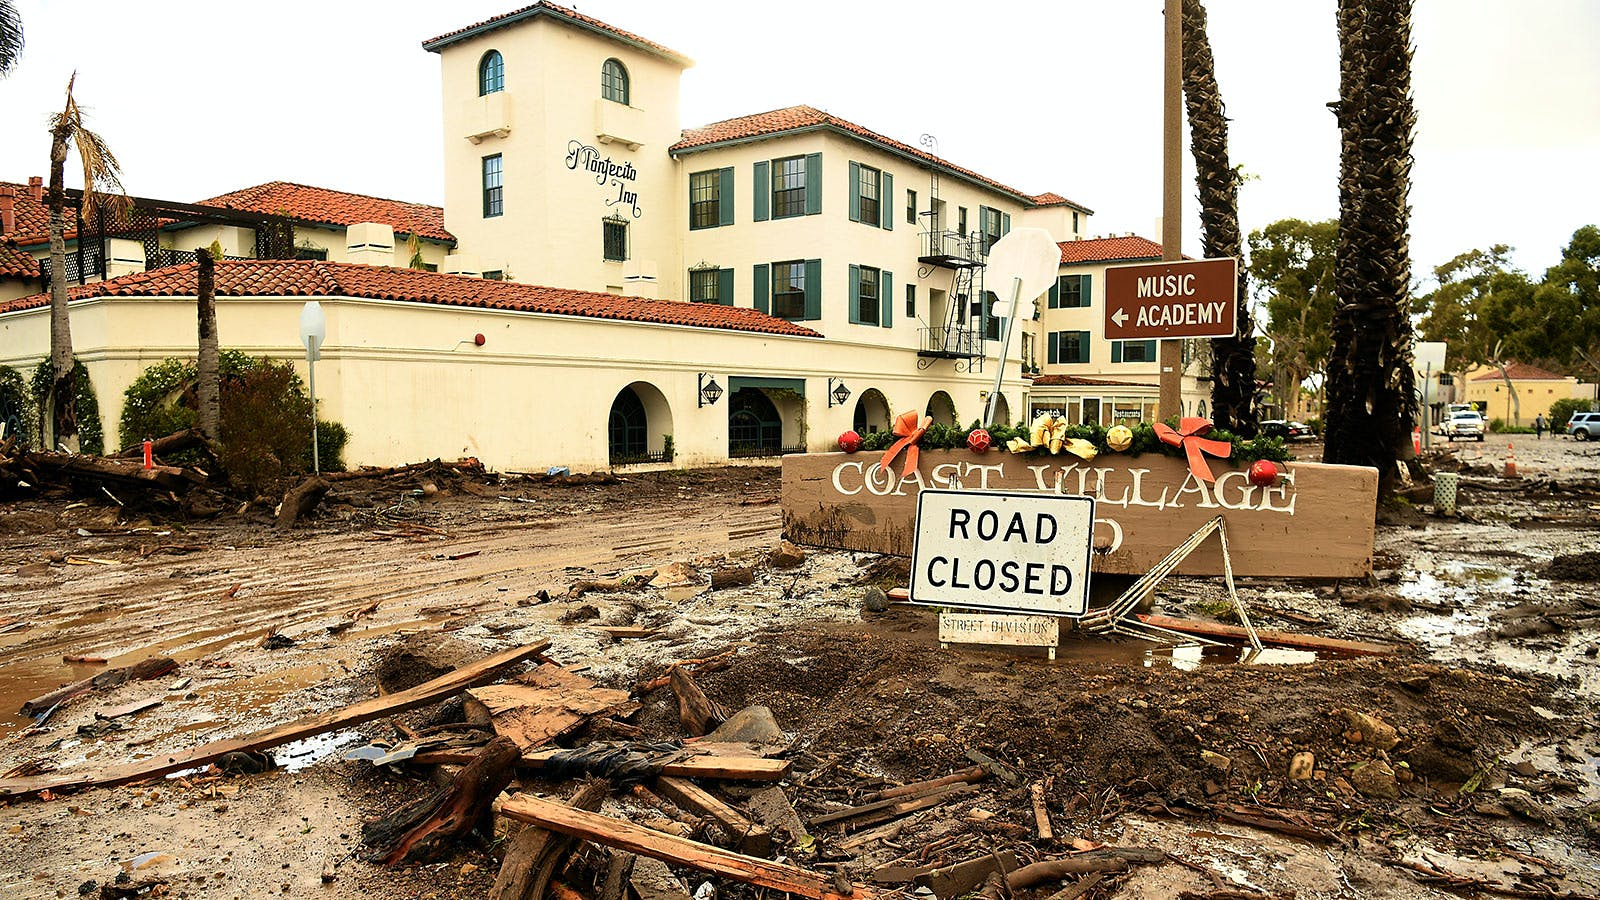 Devastating Mudslides Kill 21 in Santa Barbara County; Historic San Ysidro Ranch Resort Sustains Heavy Damage